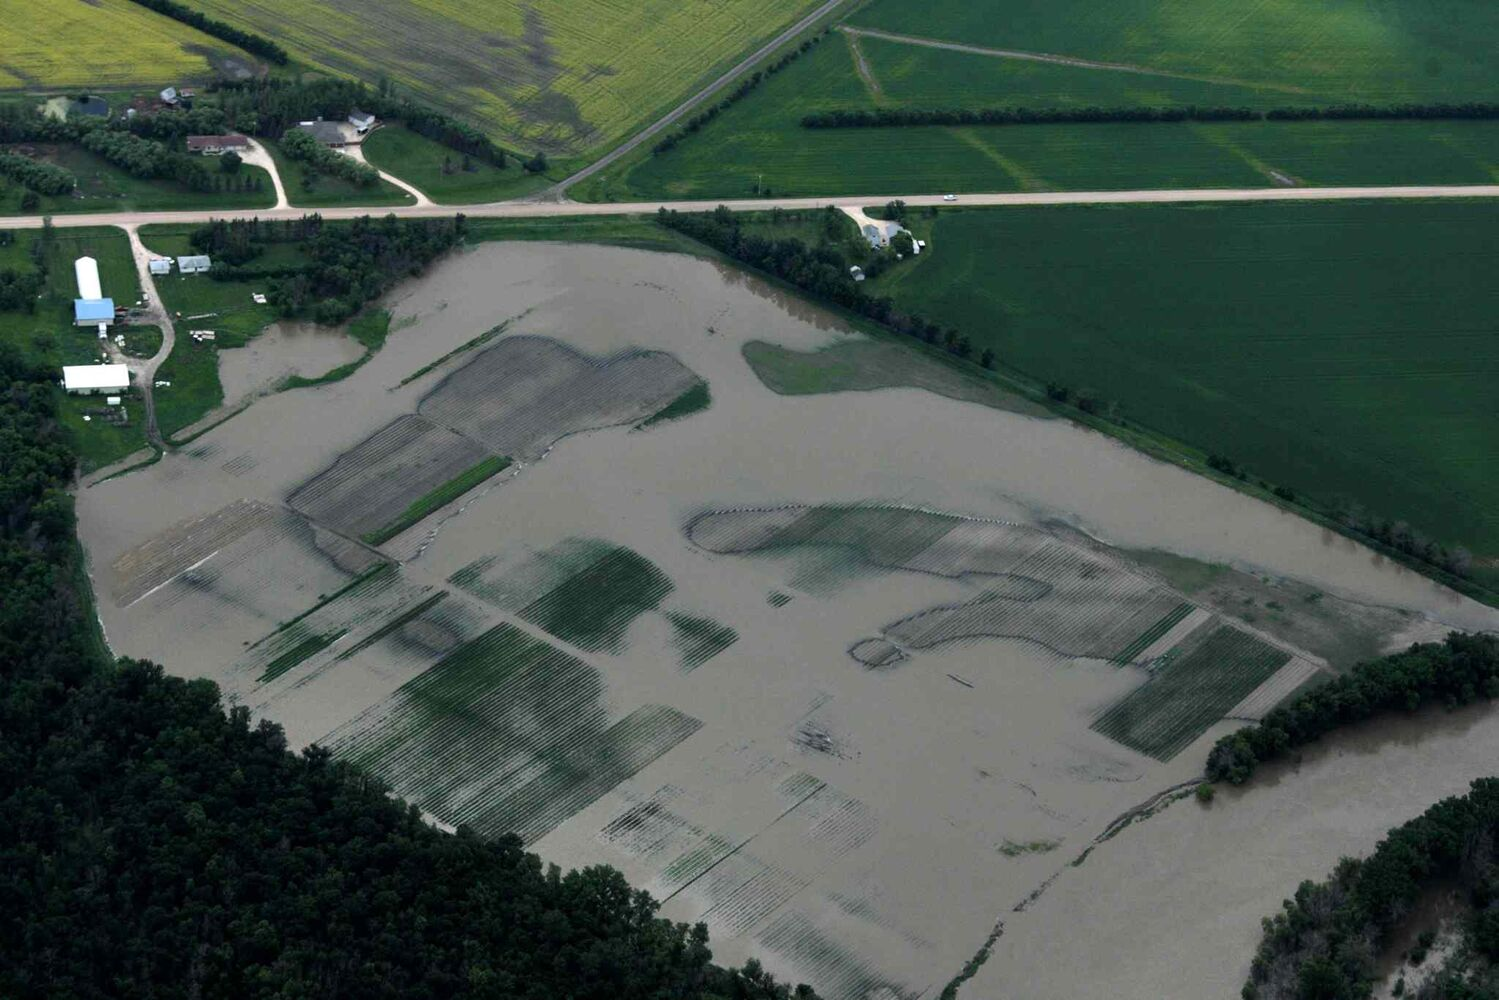 Aerial photo showing a flooded field east of  Portage la Prairie area.